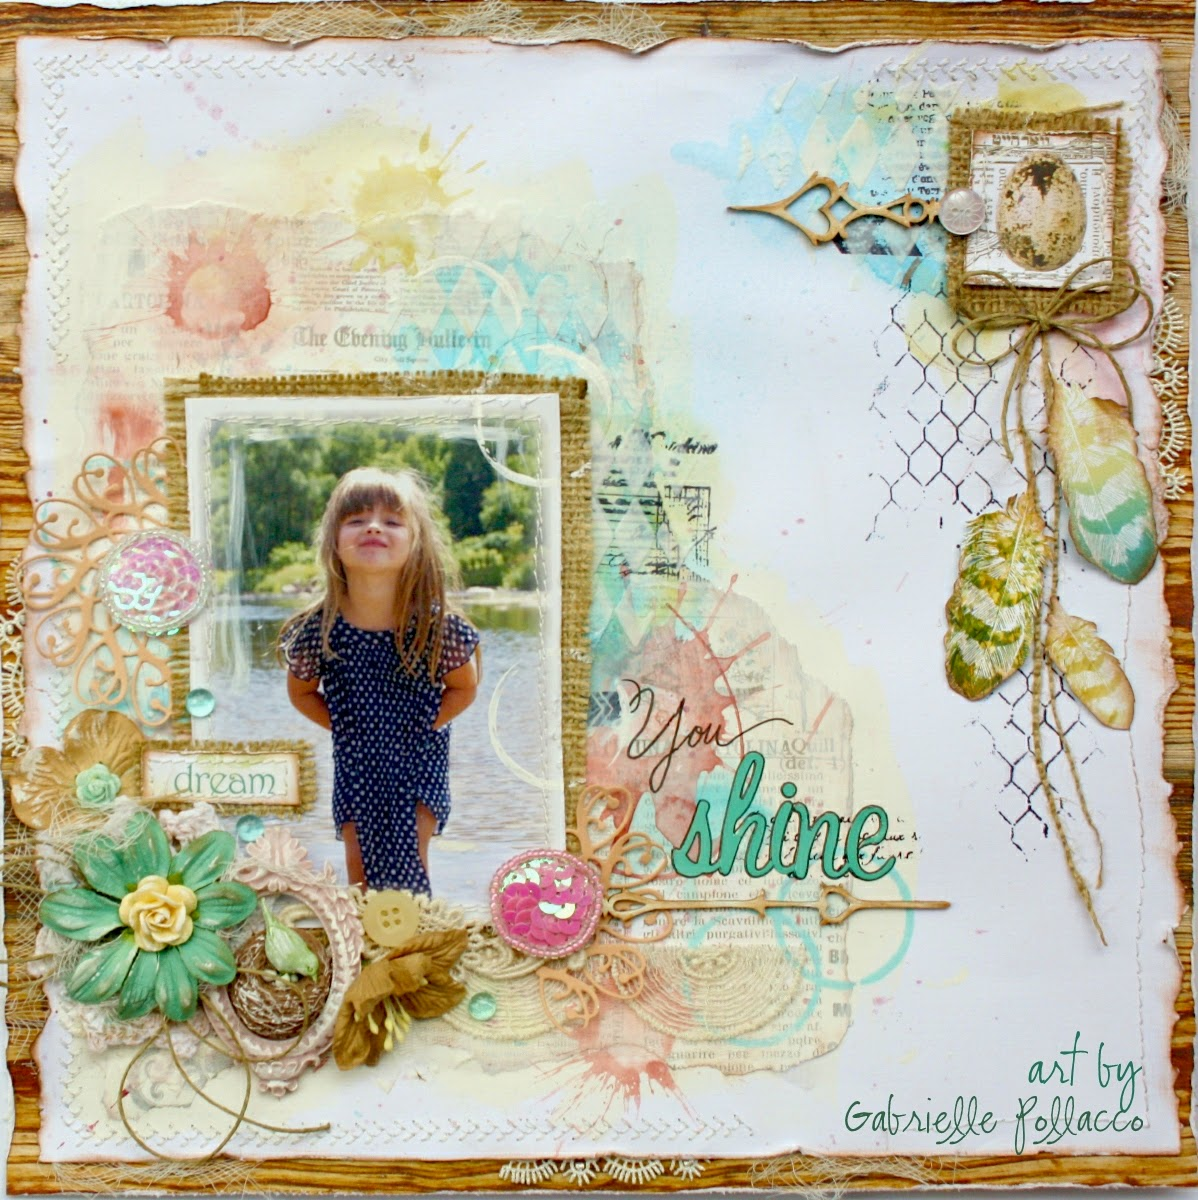 You_Shine_Layout_Scrapbook_Gabrielle_Pollacco_Websters_Pages